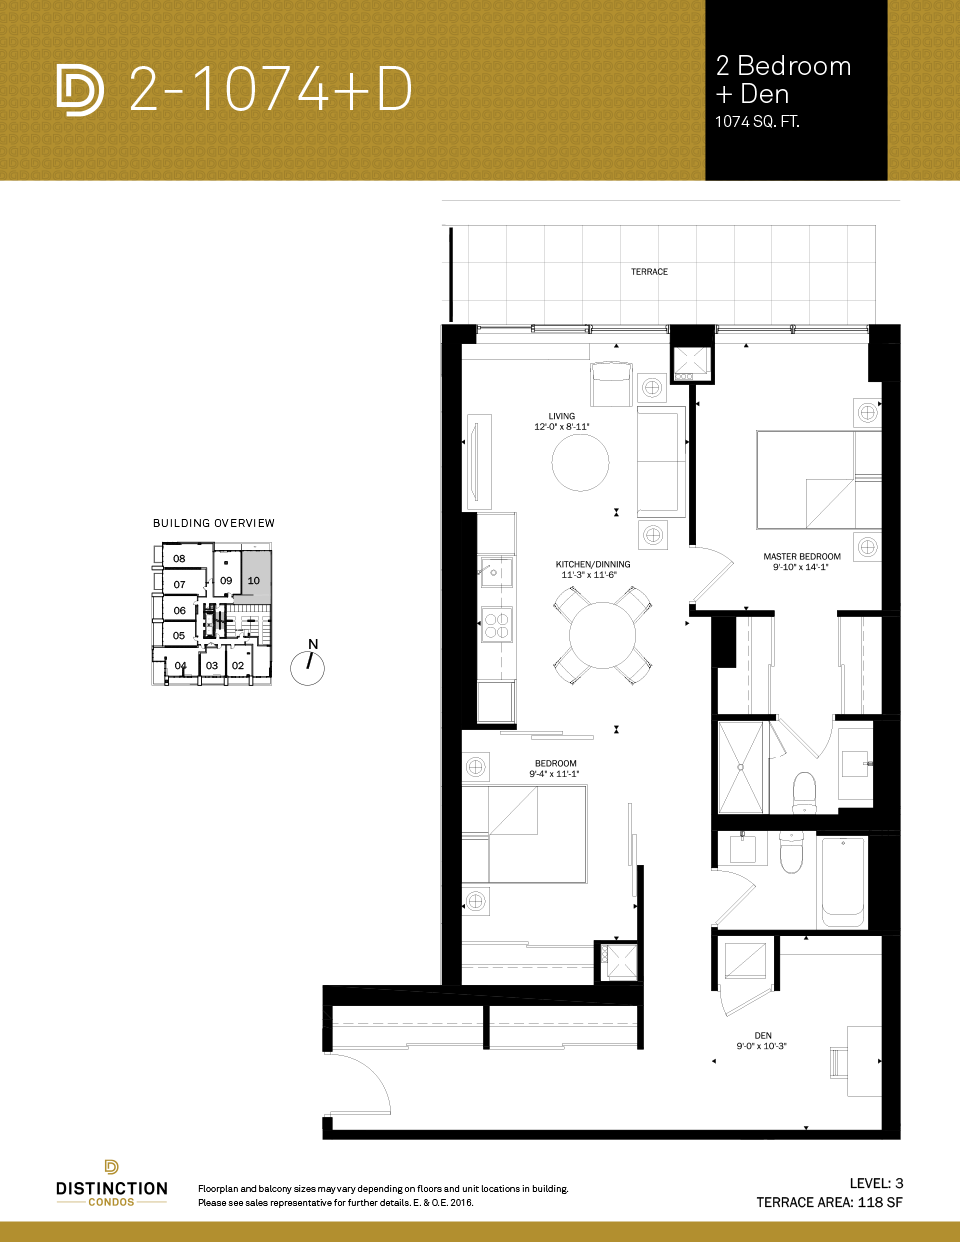 distinction condos floorplan 2-1074d